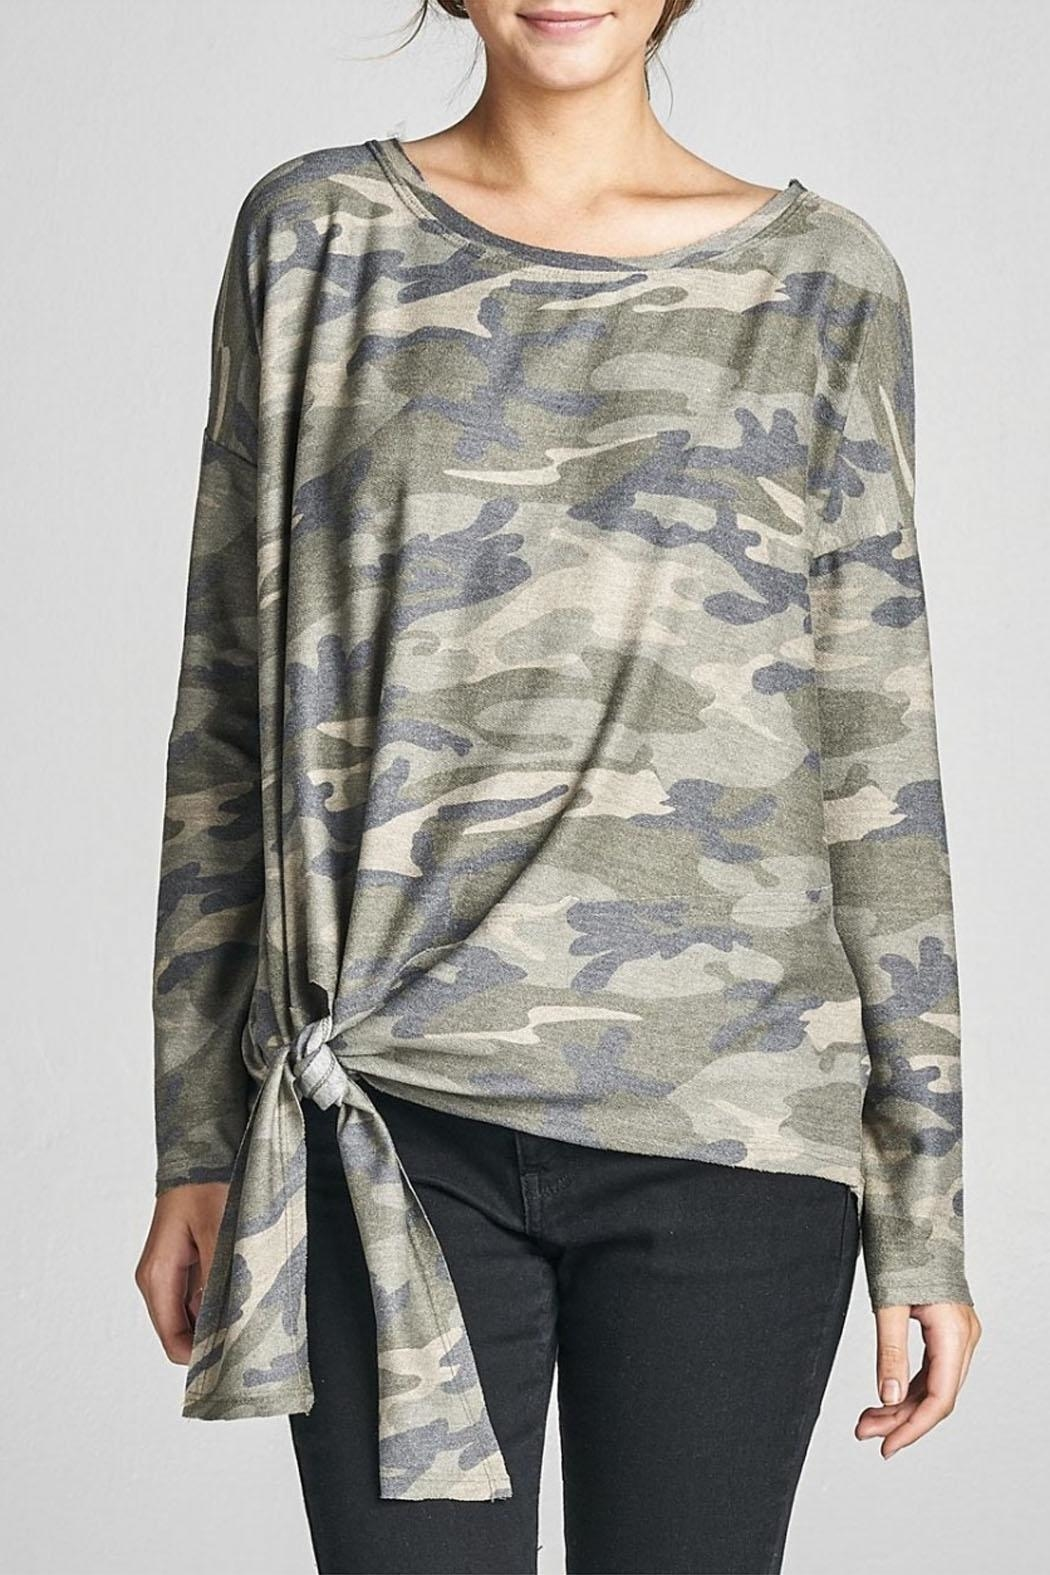 Cotton Bleu Camo Crew Neck Top - Main Image